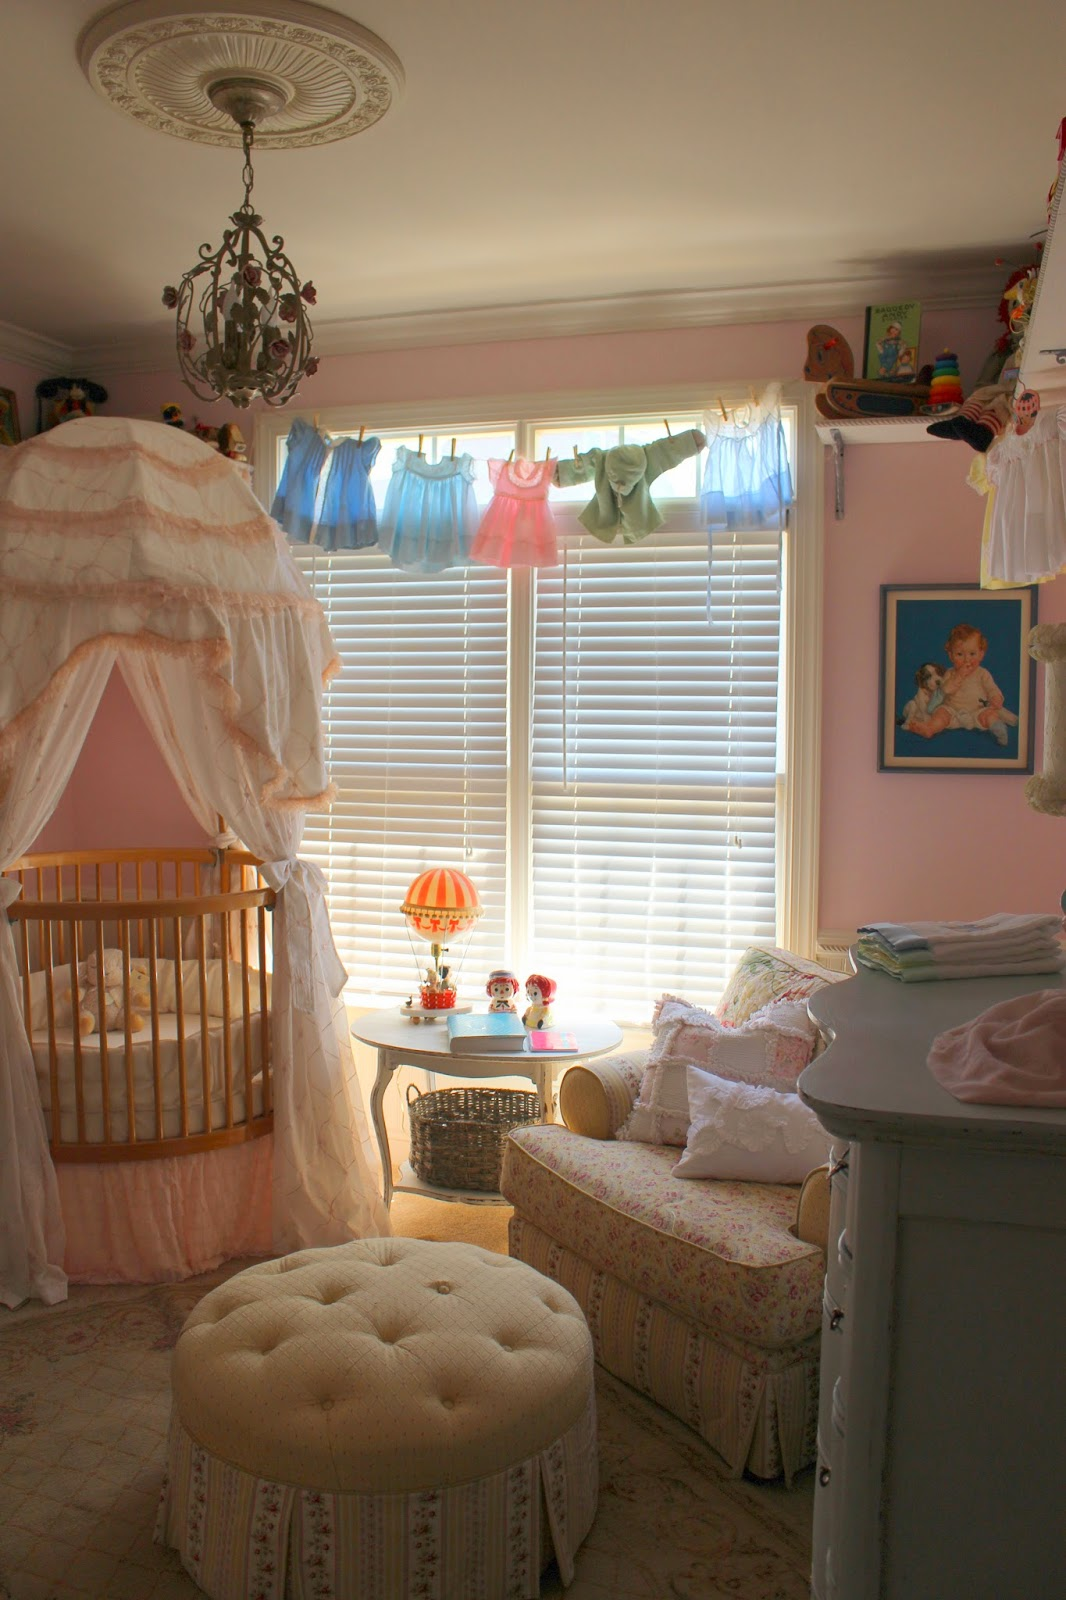 vintage nursery furniture. And A Better View Of Her BedIt\u0027s Round Crib With Tall Canopy On Top. Most People Actually Choose To Display In The Center Their Room Vintage Nursery Furniture